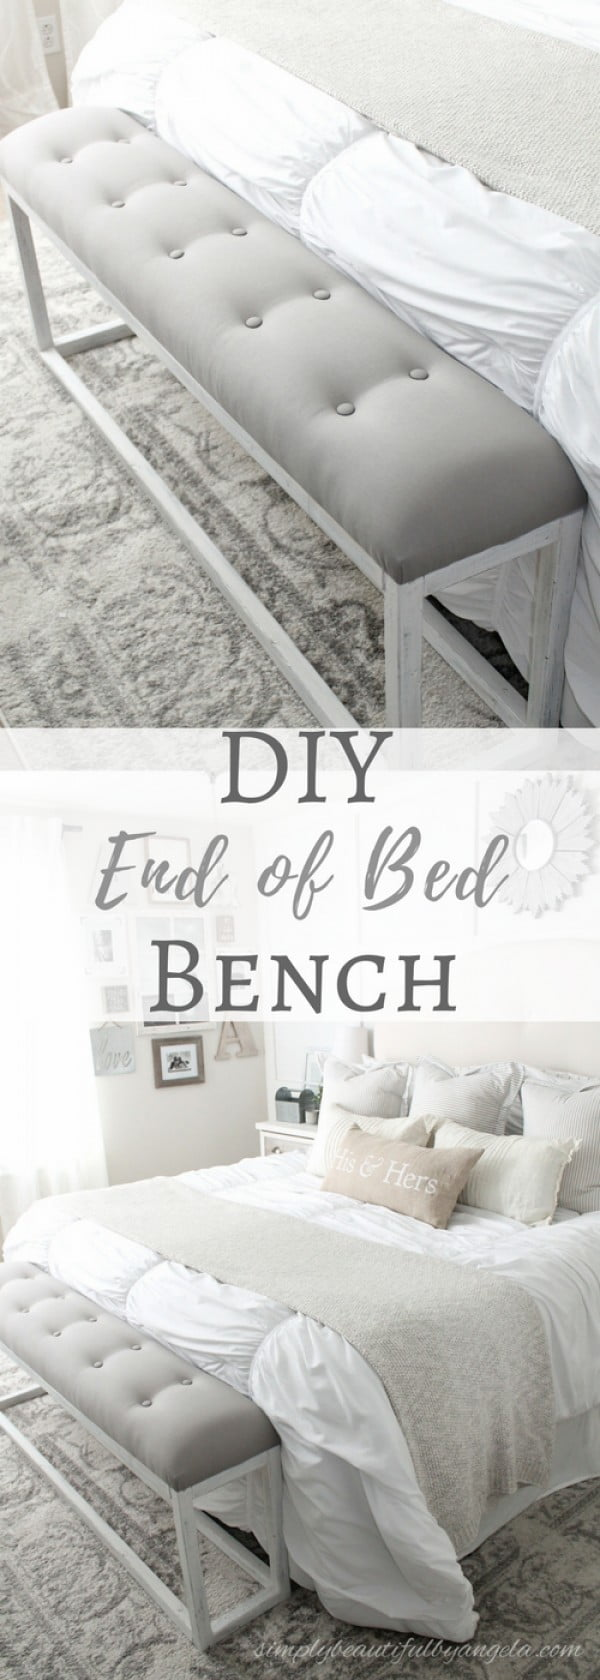 Check out the tutorial on how to make a DIY bed end bench